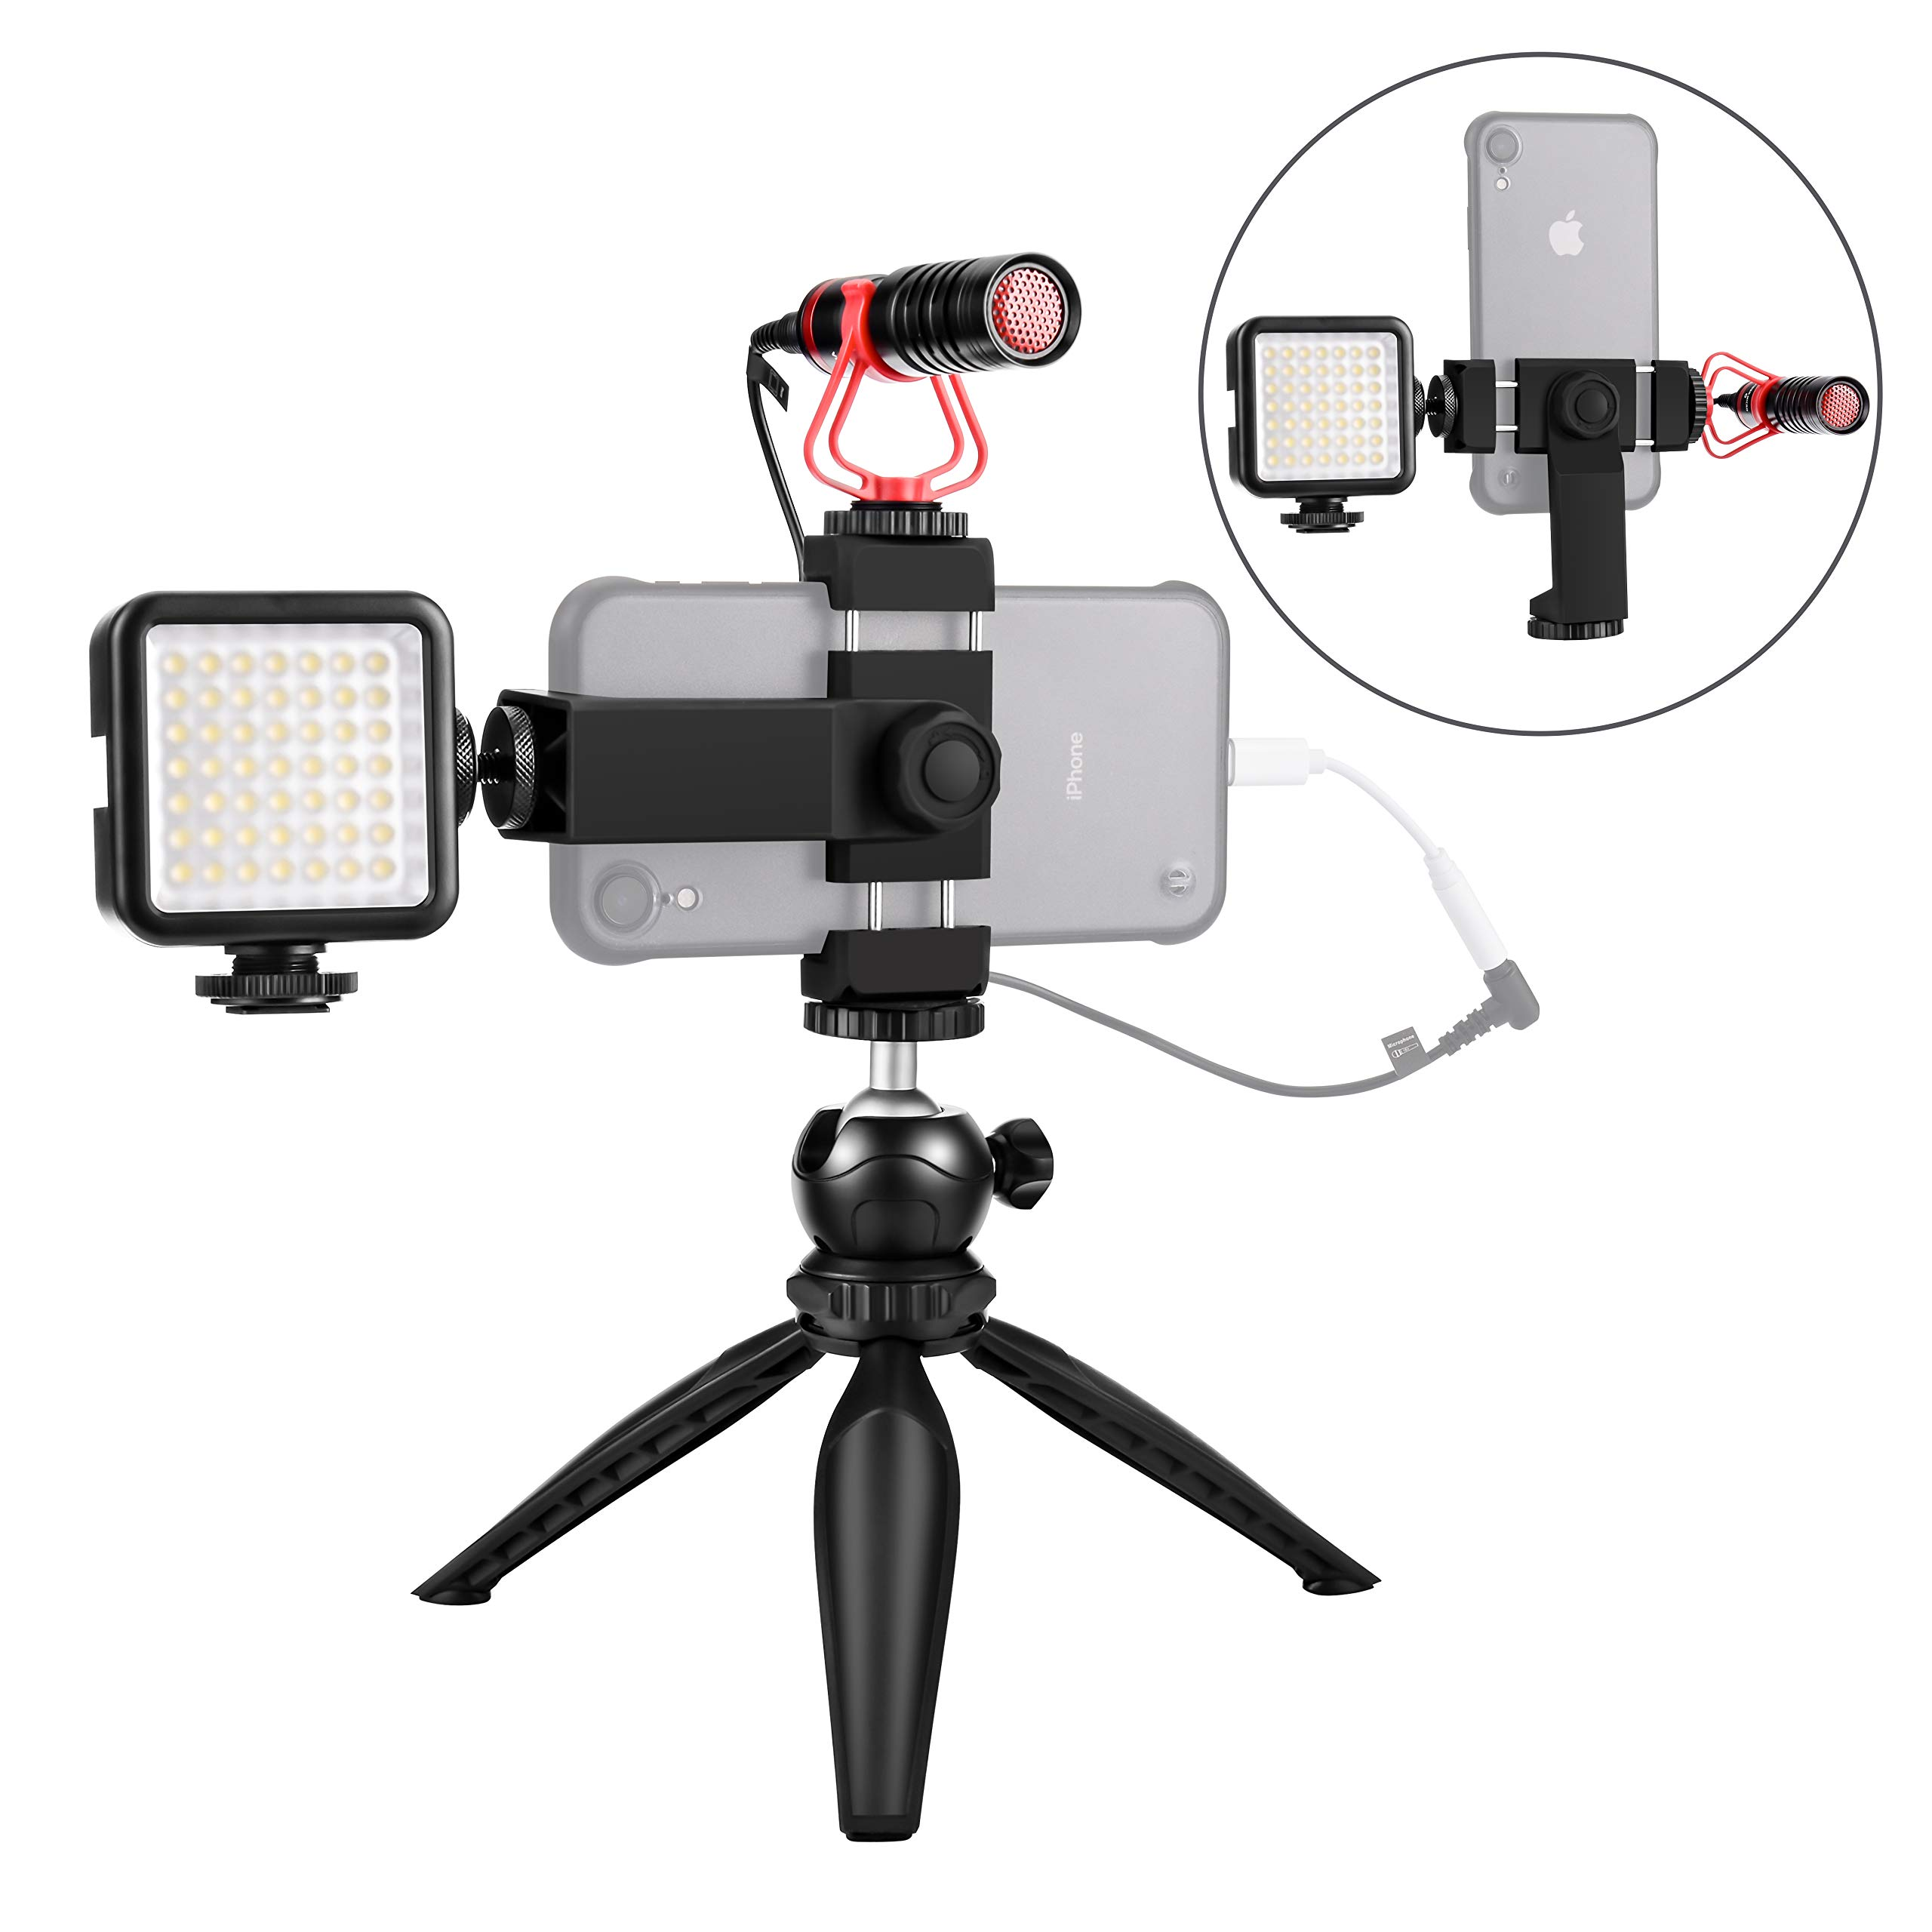 Smartphone Video Microphone Kit with LED Light,Phone Holder,Tripod Vertical & Horizontal Vlog YouTube Video Kit for iPhone 7 8 X XS MAX 11 Pro Samsung Huawei by Lenton